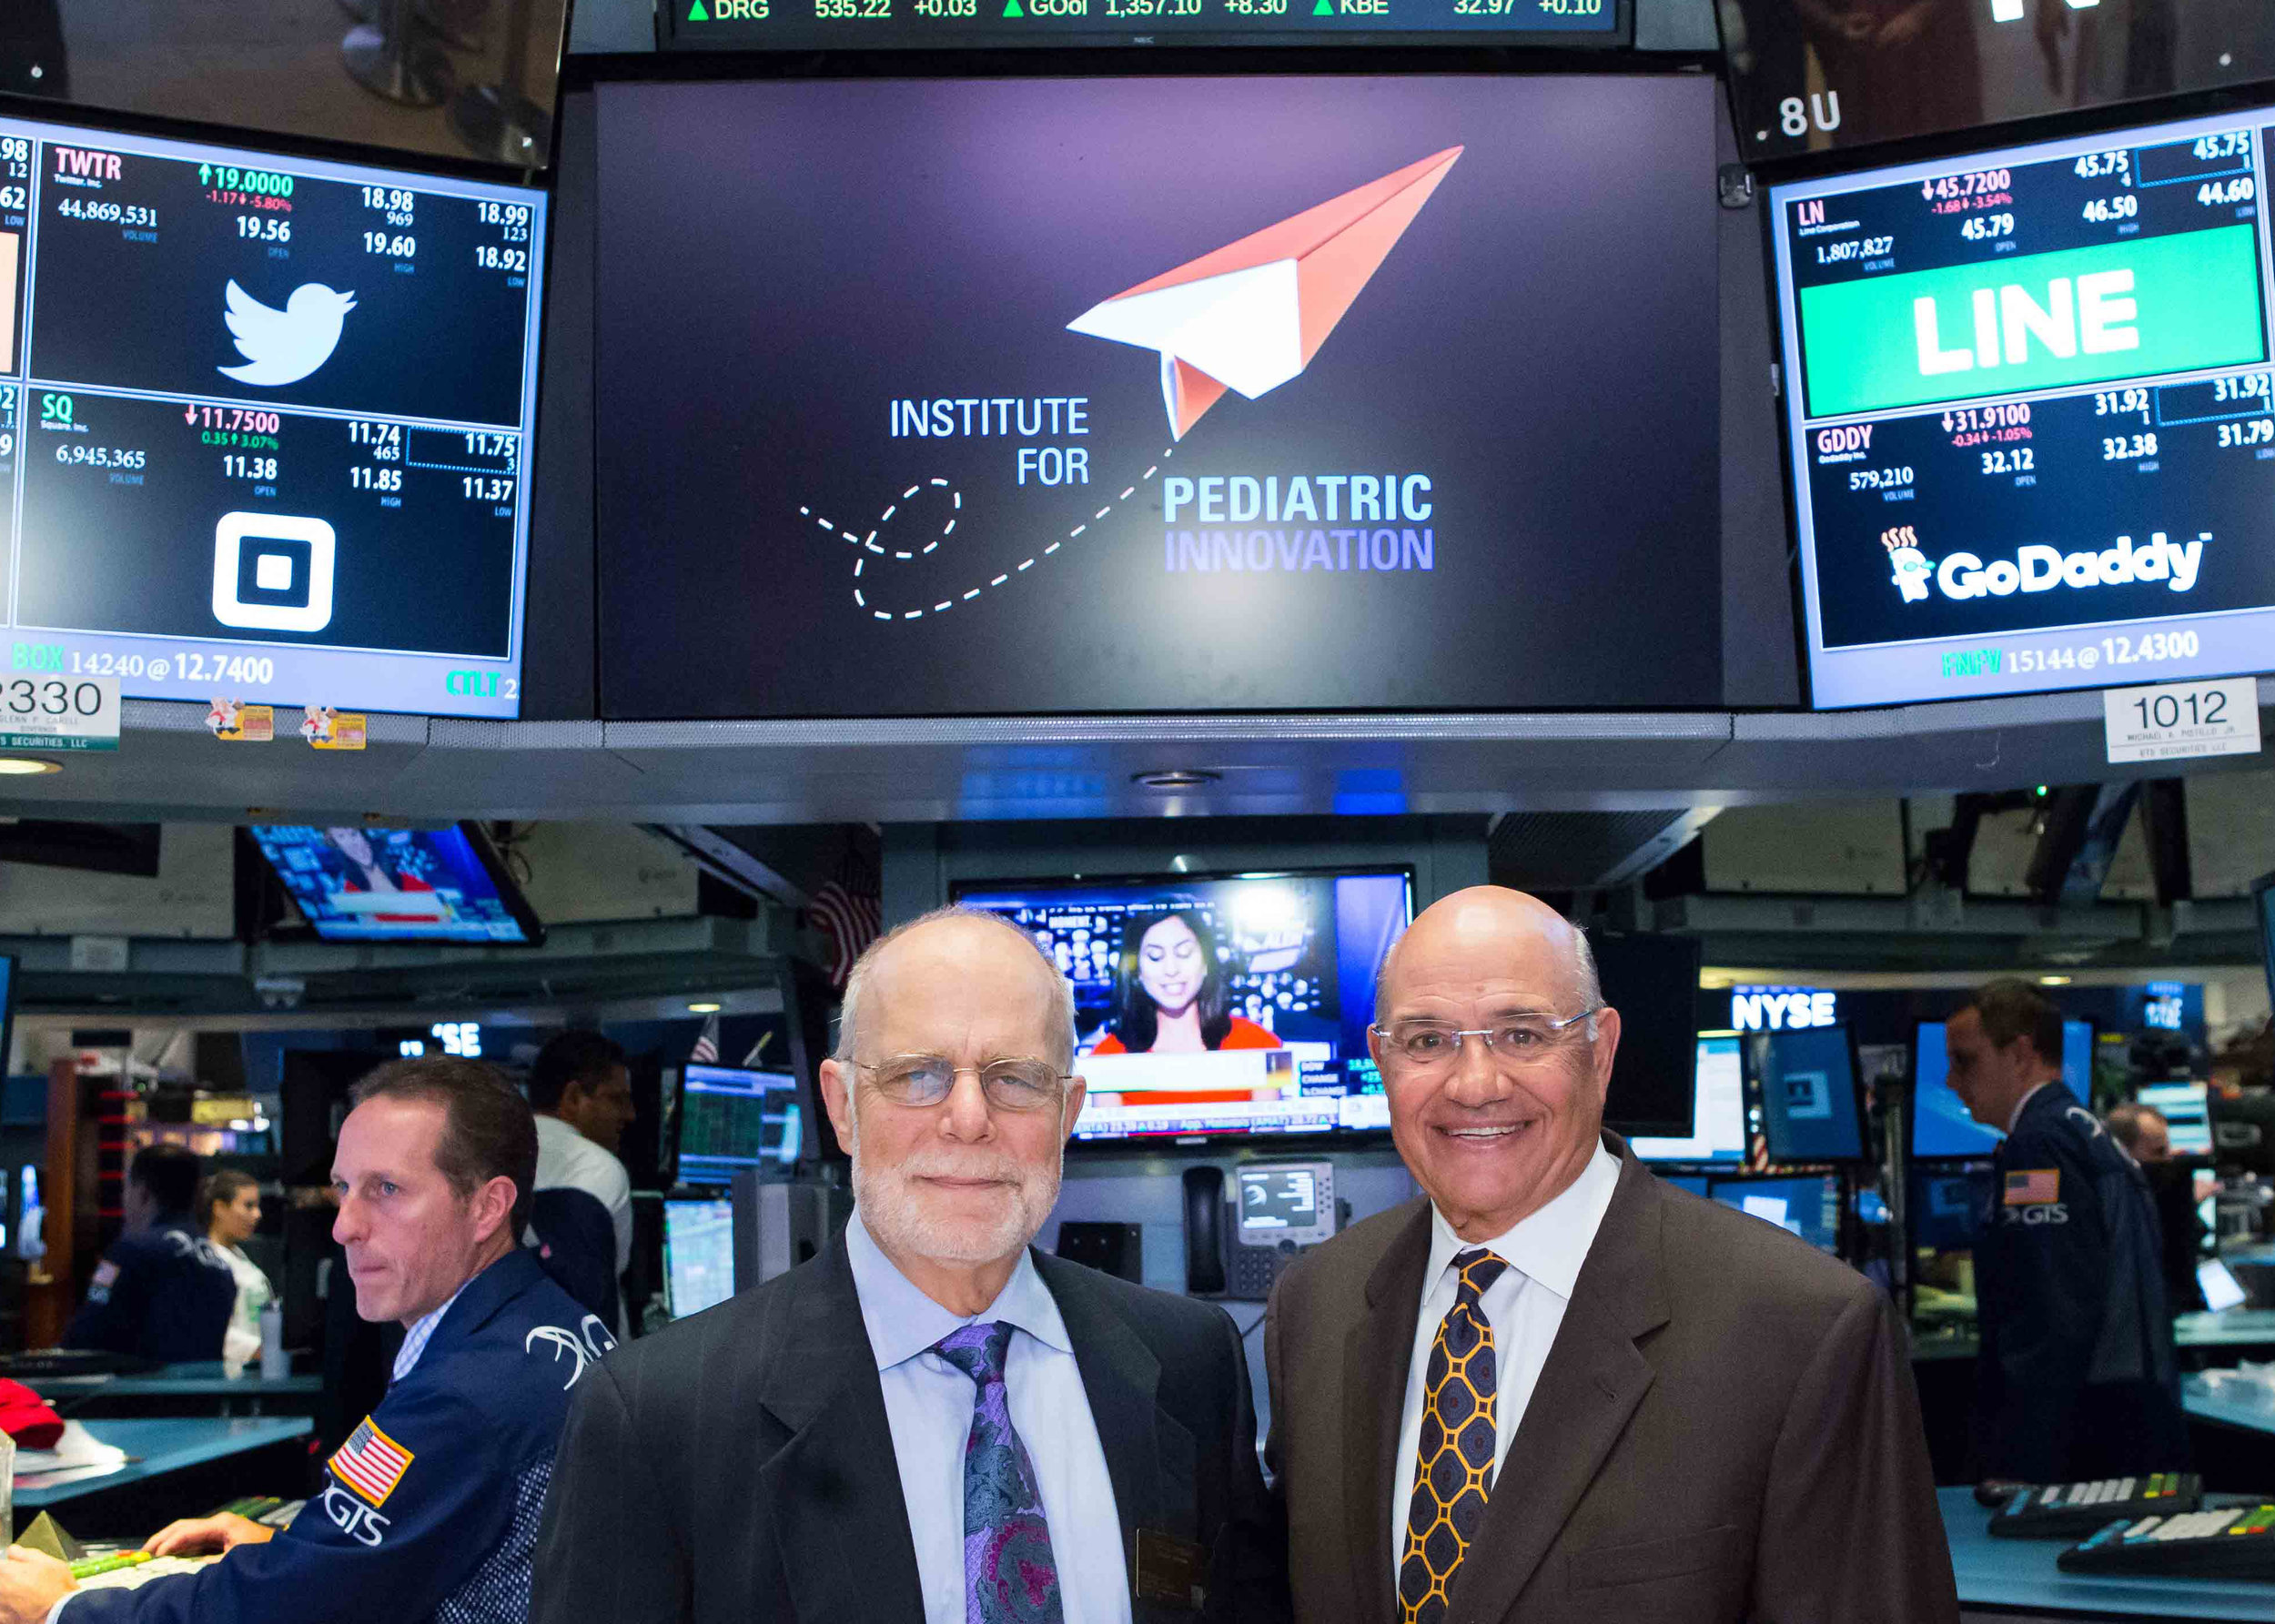 Founder Donald Lombardi (left) and President/CEO Stephen Evangelista pose in front of IPI's logo before ringing the New York Stock Exchange's closing bell in August of 2016